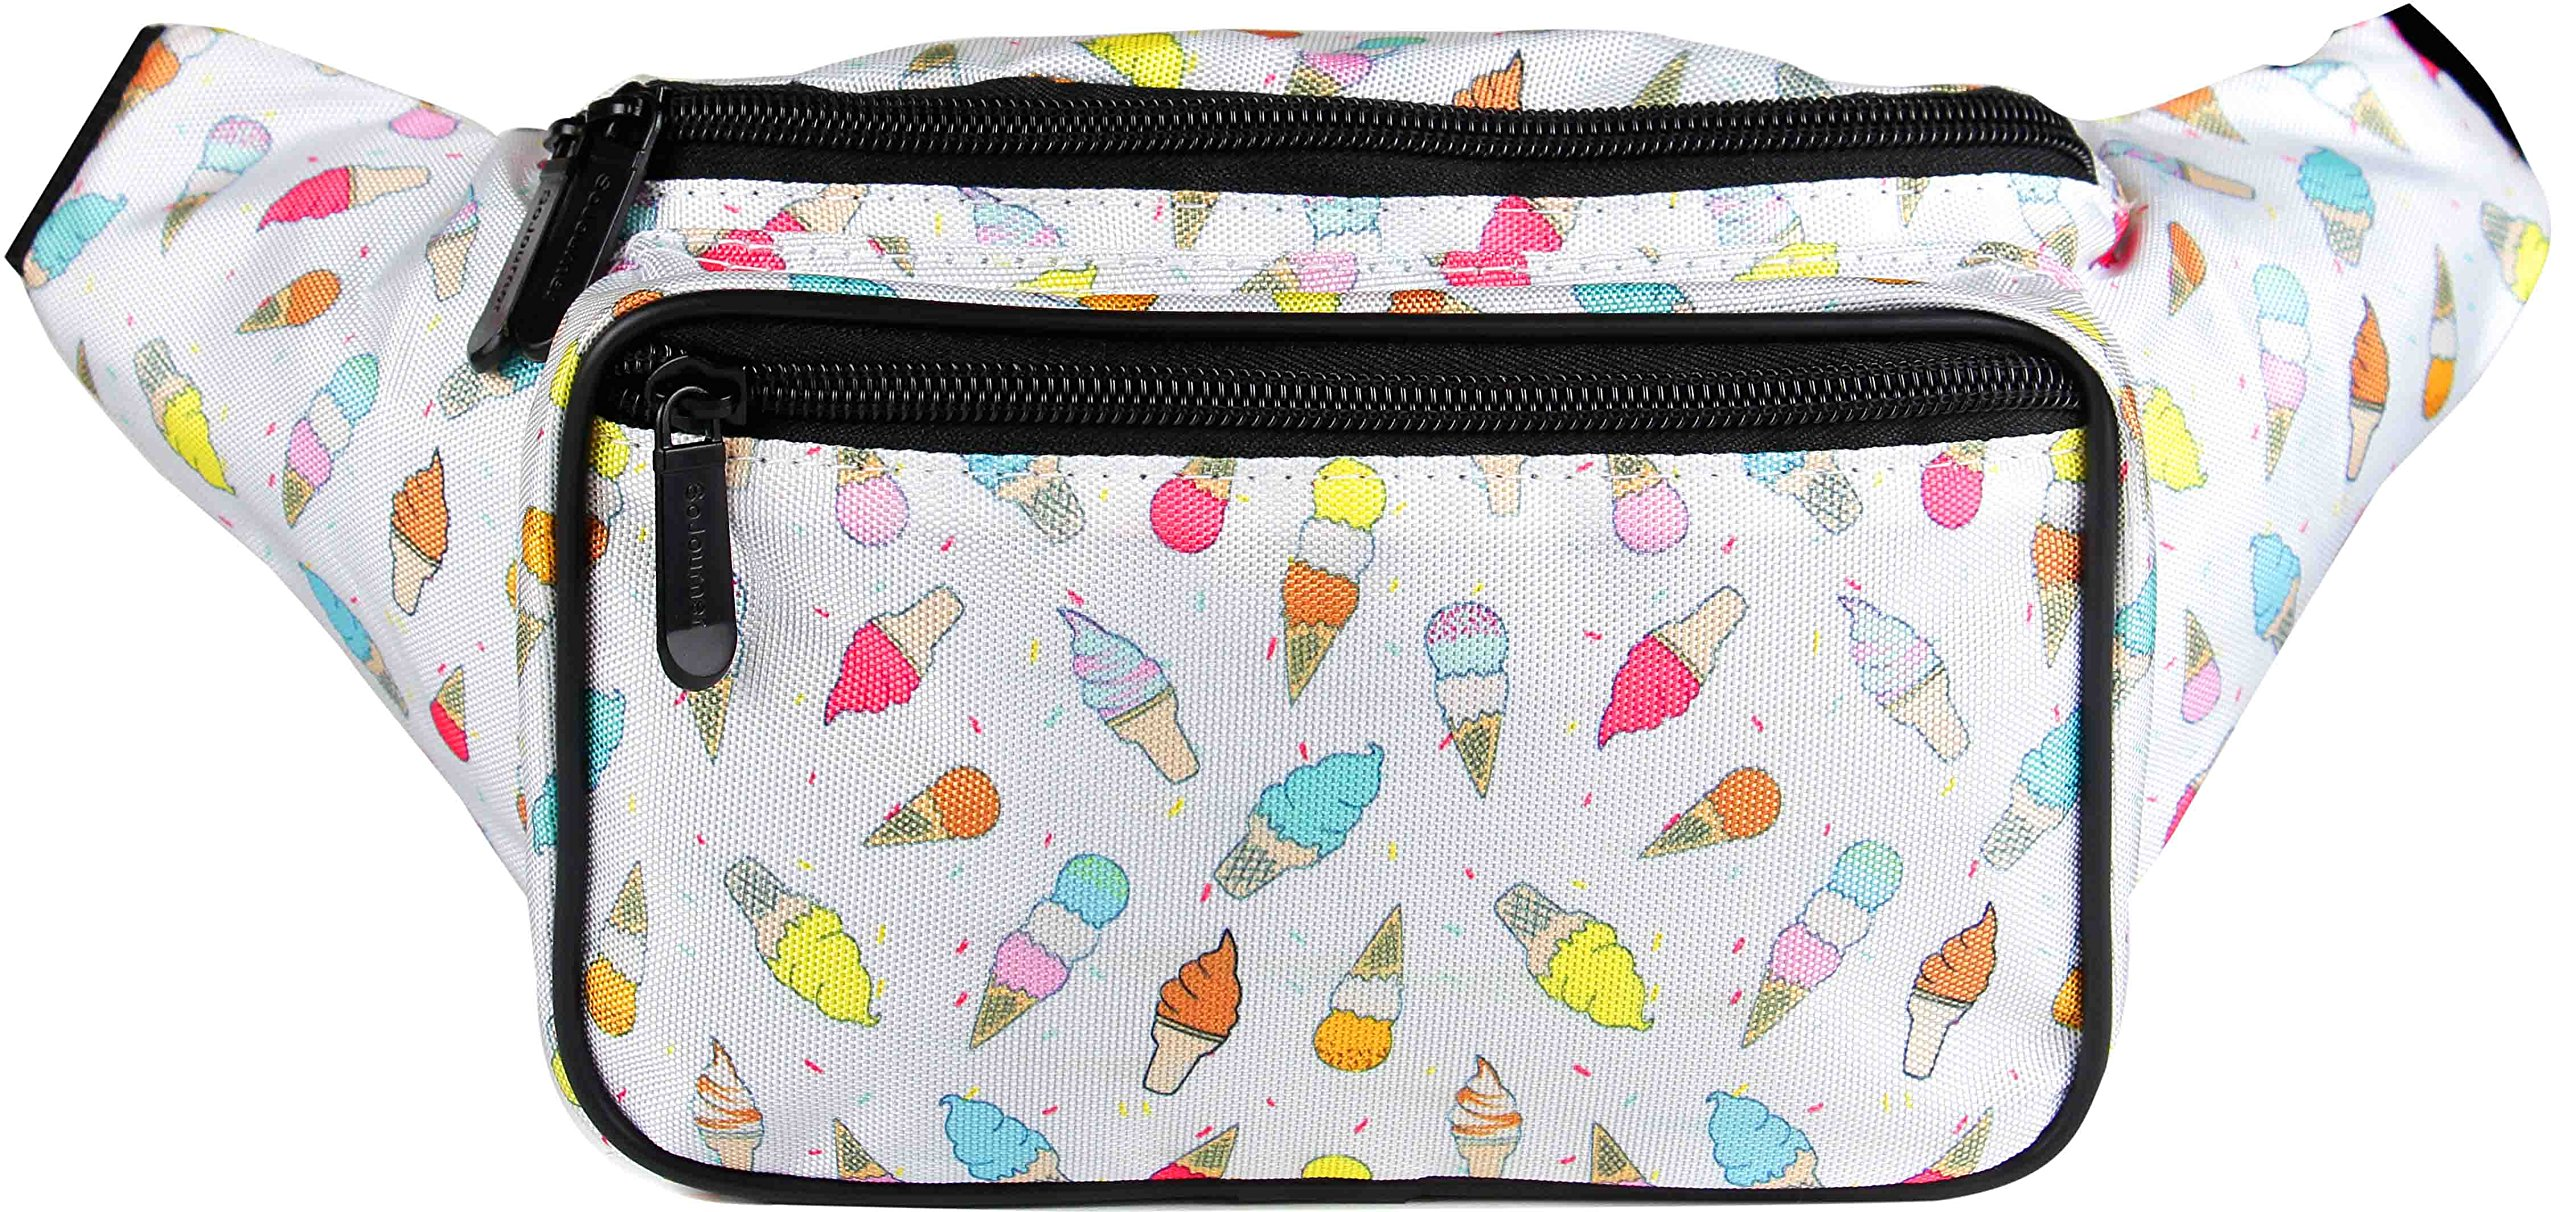 SoJourner Ice Cream Fanny Pack - Packs for men, women | Cute Waist Bag Fashion Belt Bags